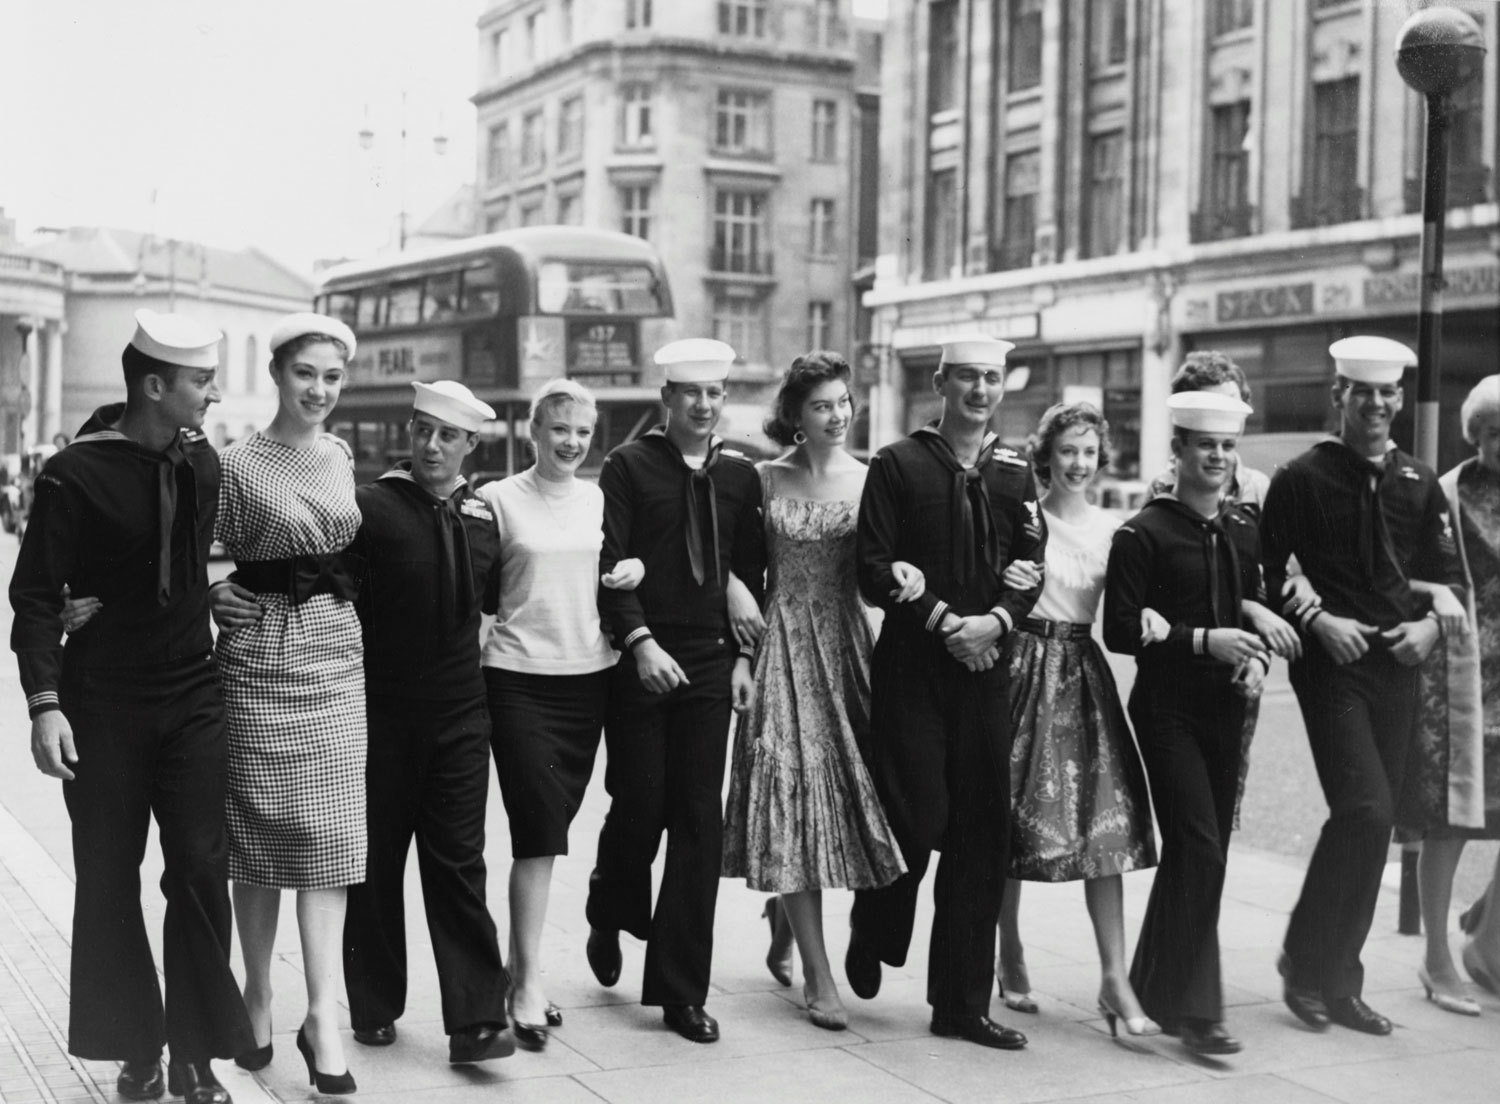 Sailors from the American nuclear submarine accompanied by London showgirls, August 1958, TopFoto, TopFoto, In Copyright